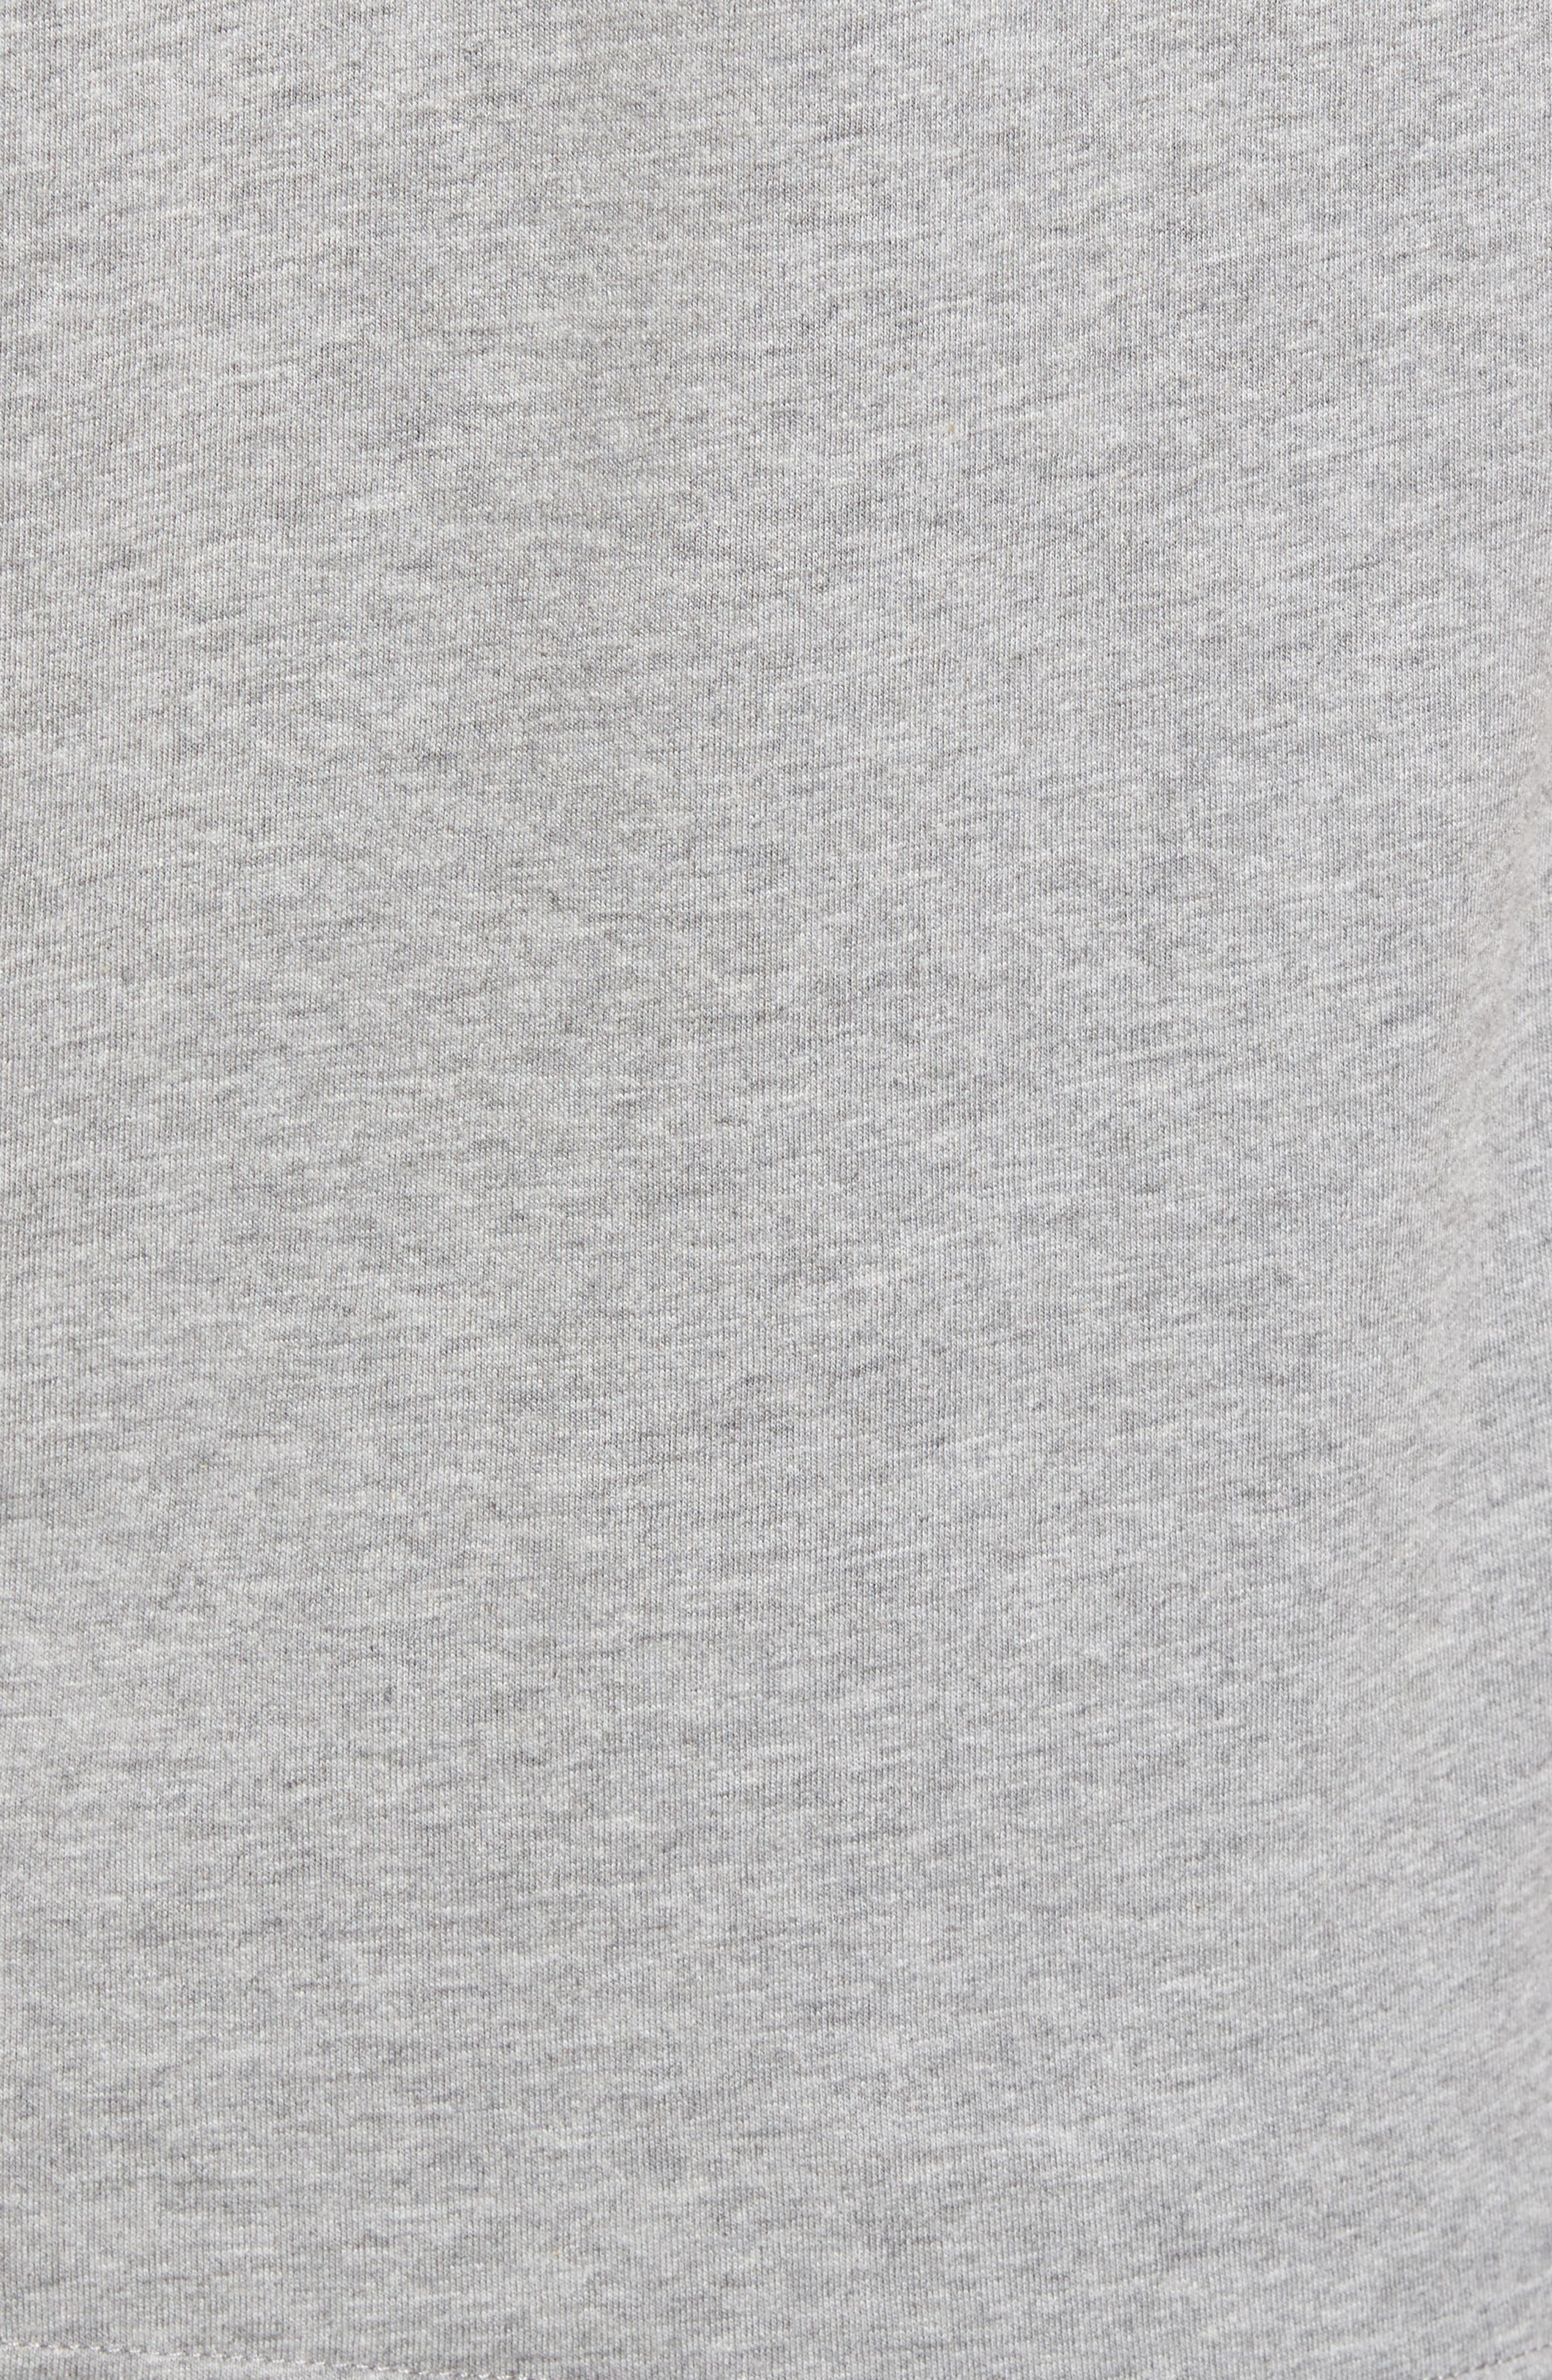 Morning Anchor Graphic T-Shirt,                             Alternate thumbnail 5, color,                             Grey Heather